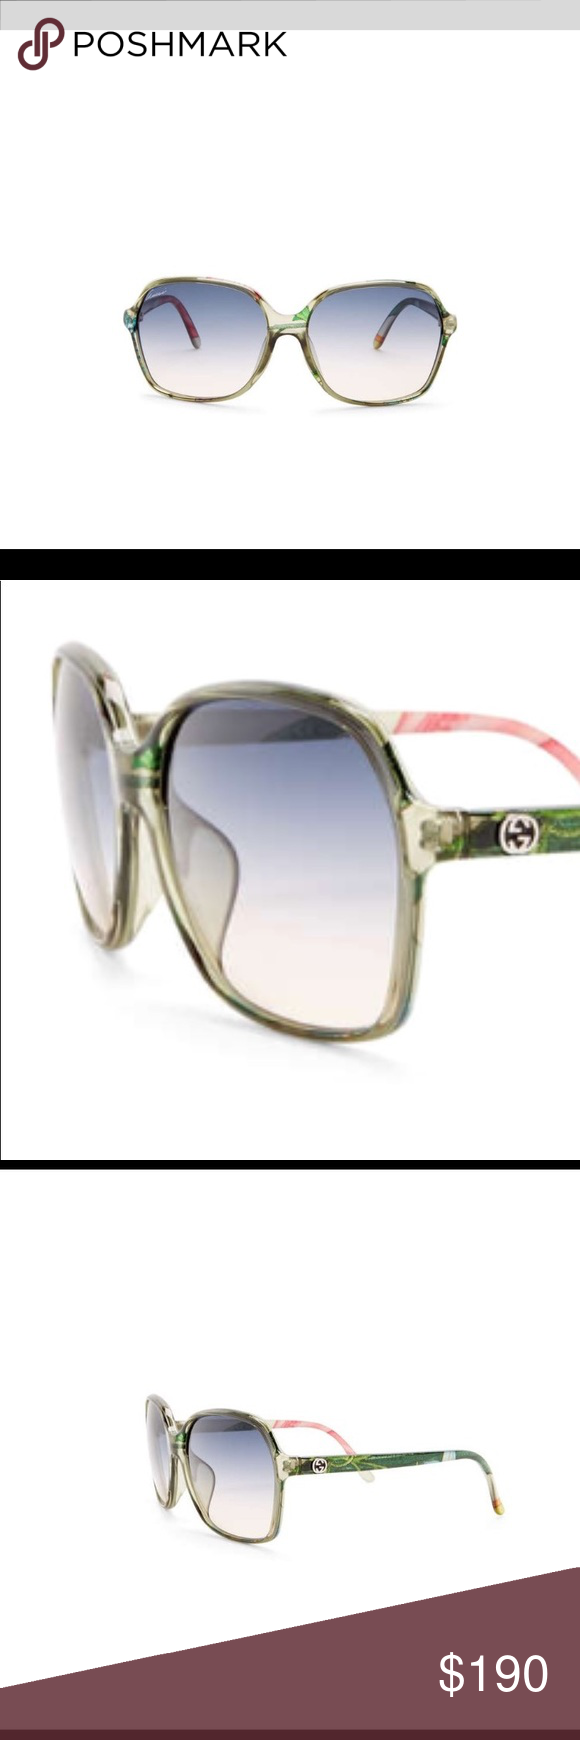 29bc2b7865 Authentic Gucci Green Floral Sunglasses Women s oversized sunglasses.  Printed green crystal frame. Lens color is smoke gradient. 100% UV  protection.